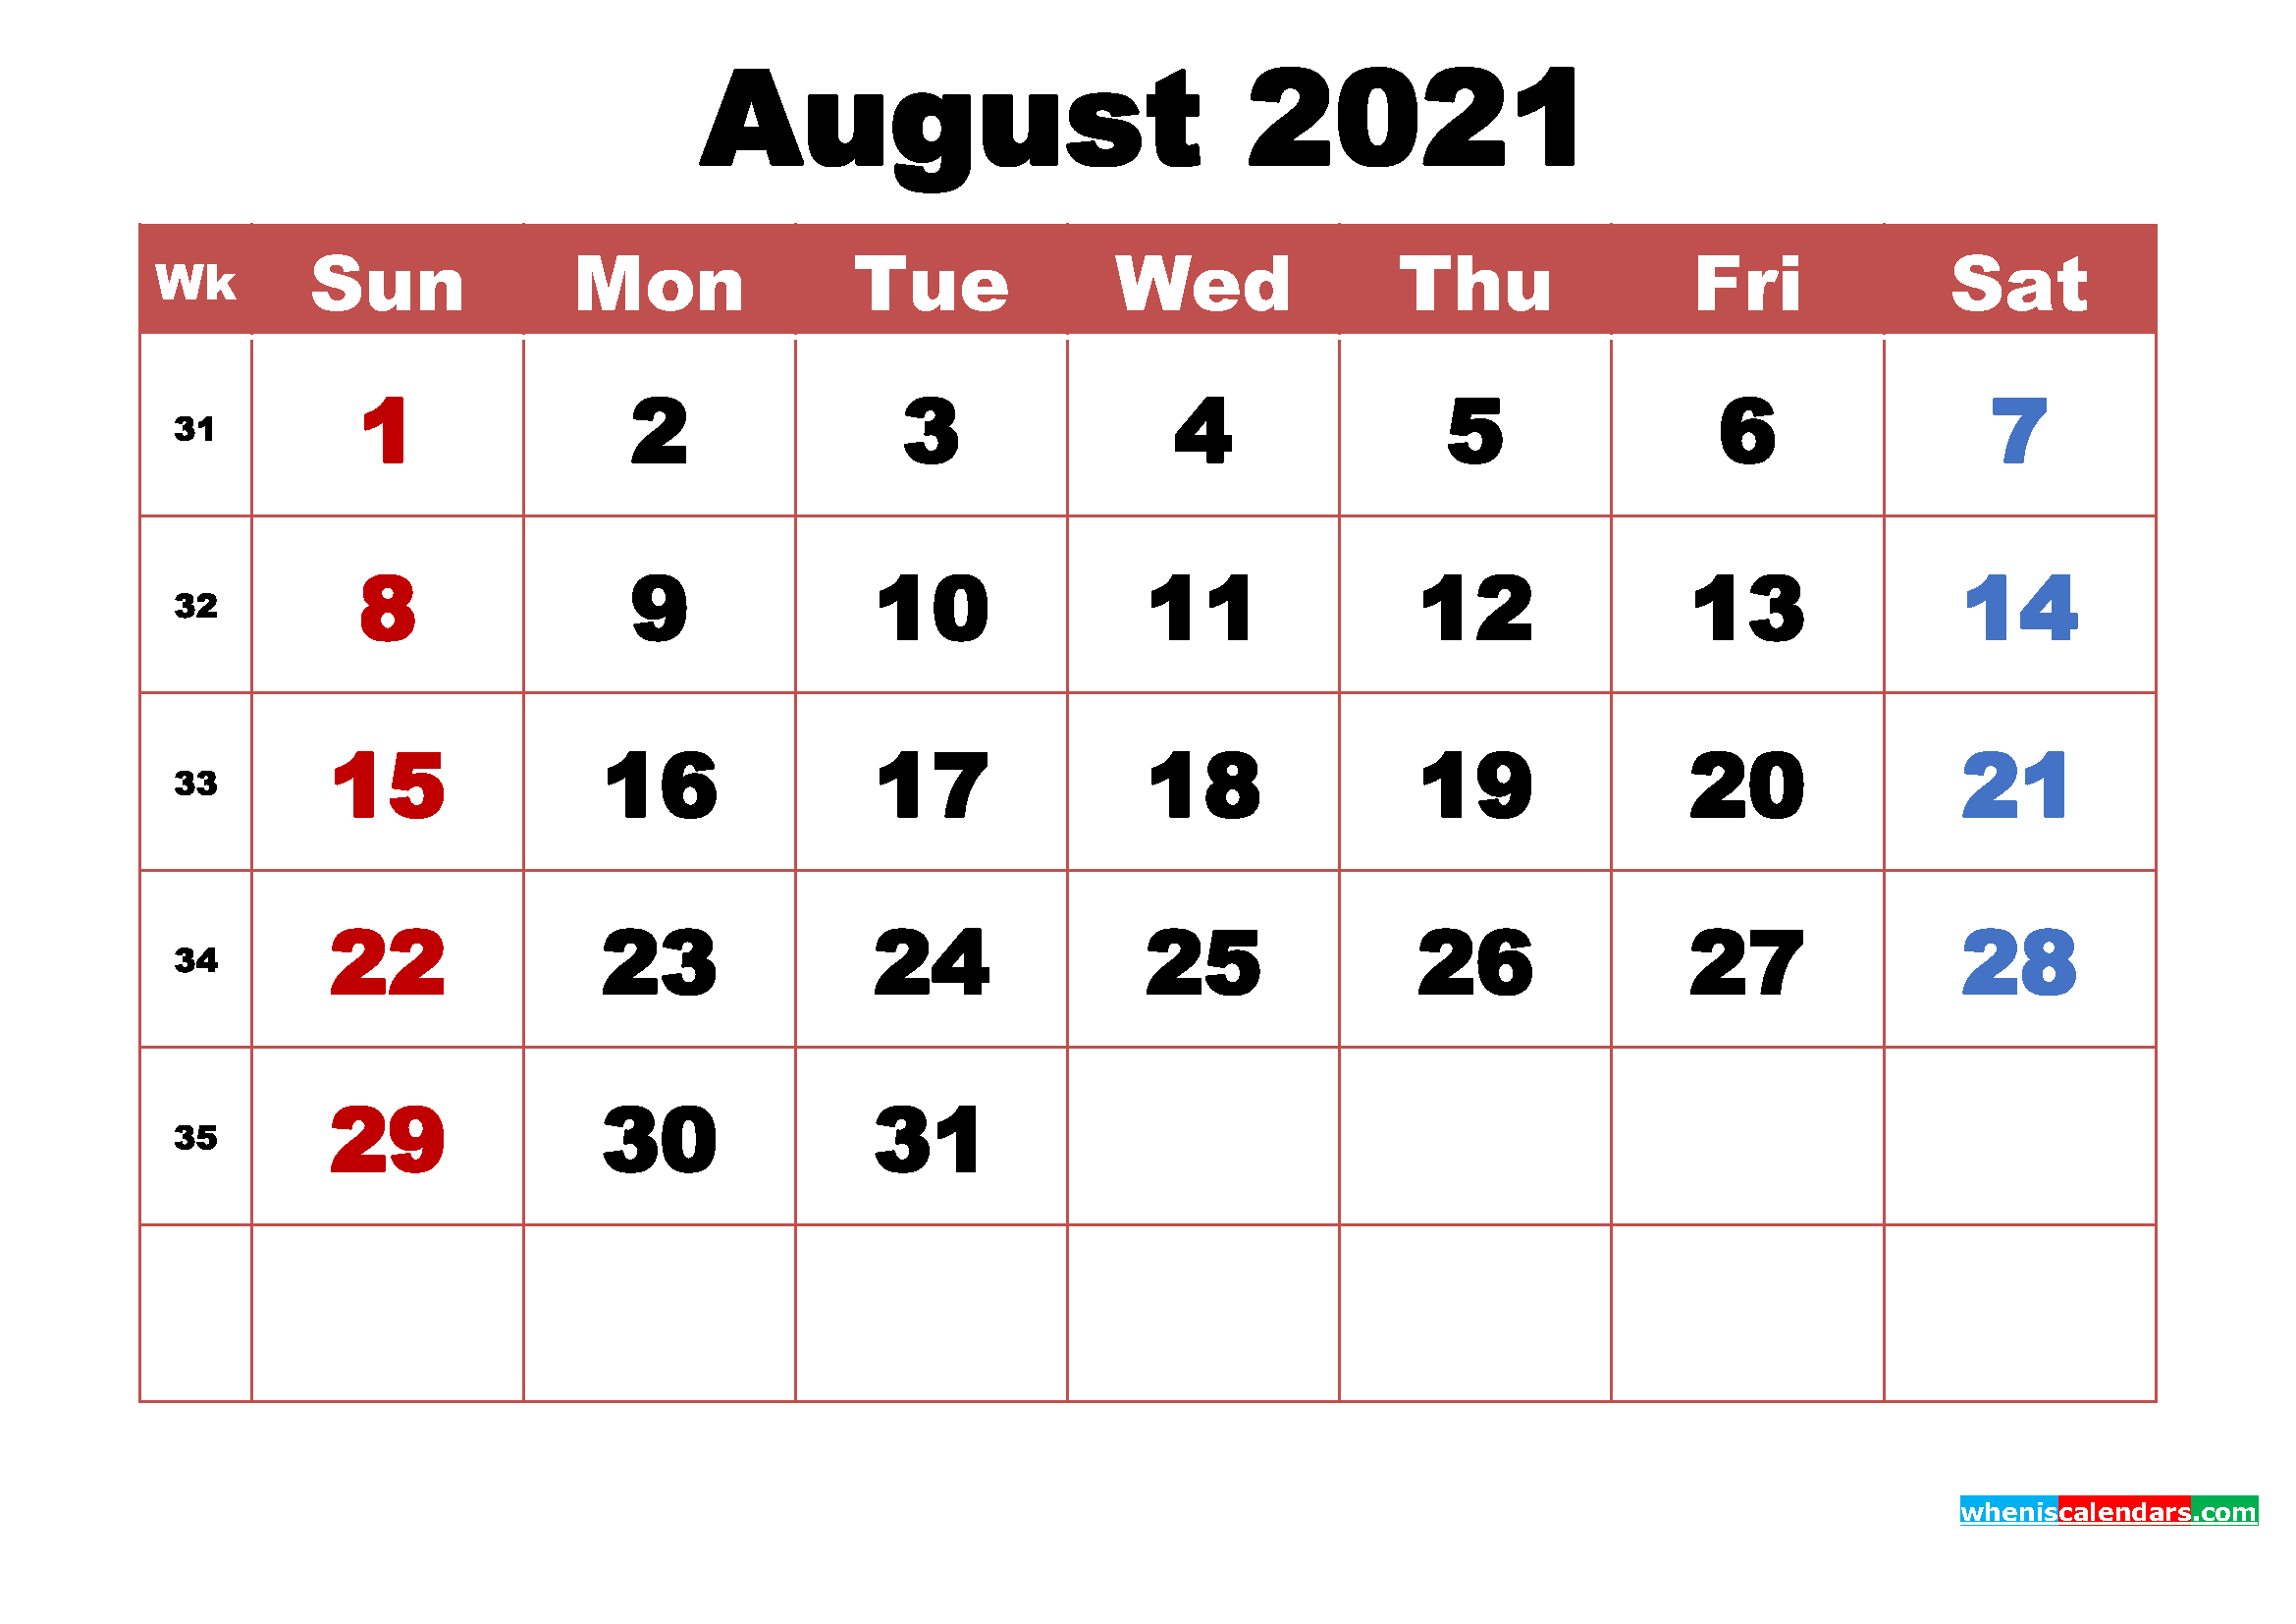 August 2021 Calendar with Holidays Printable